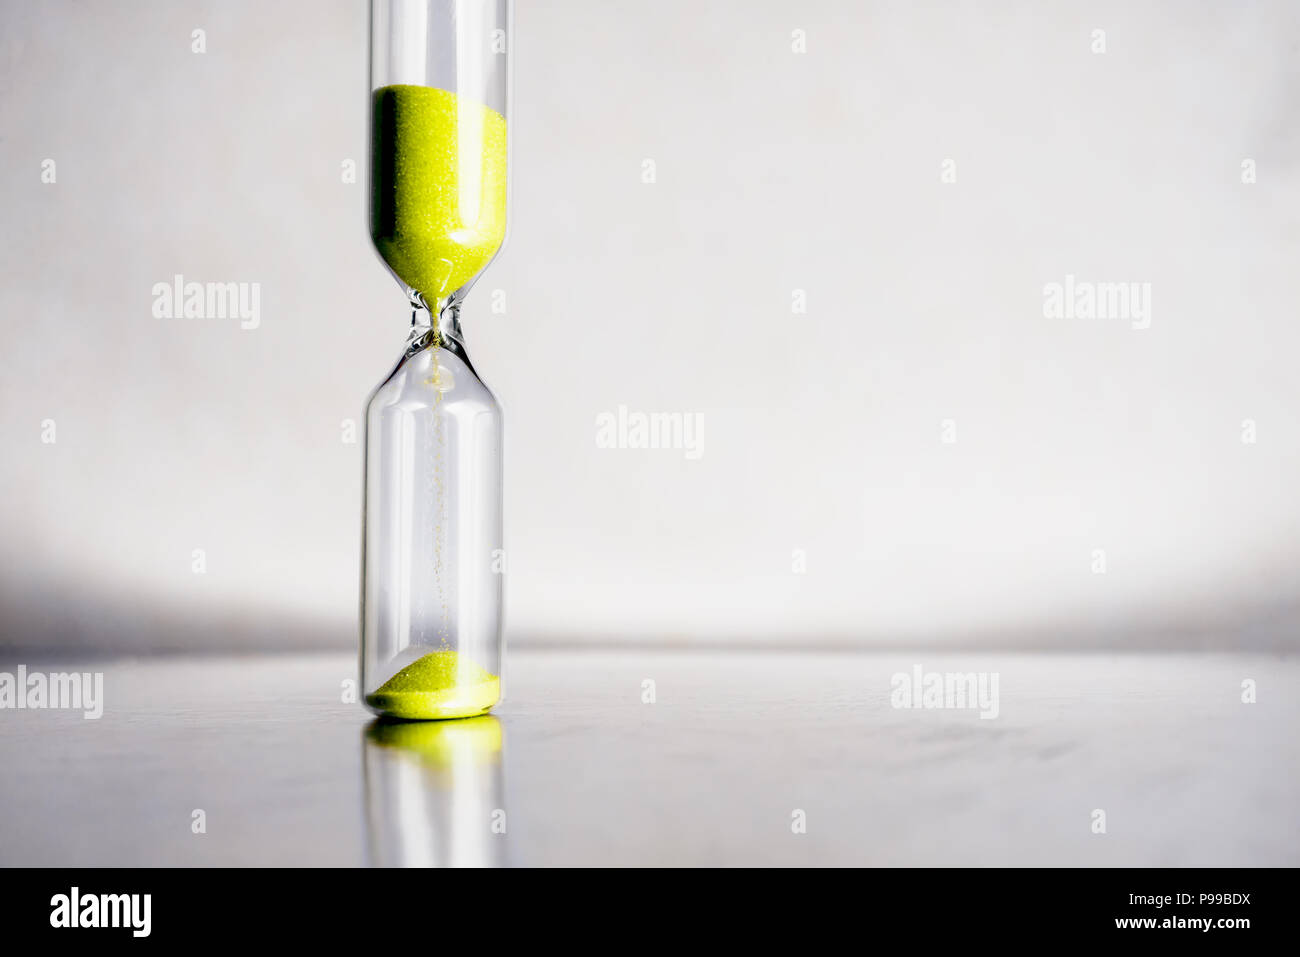 Modern beautiful yellow hourglass with bright background for copy space. Hourglass time passing concept for business deadline, urgency and running out of time. - Stock Image